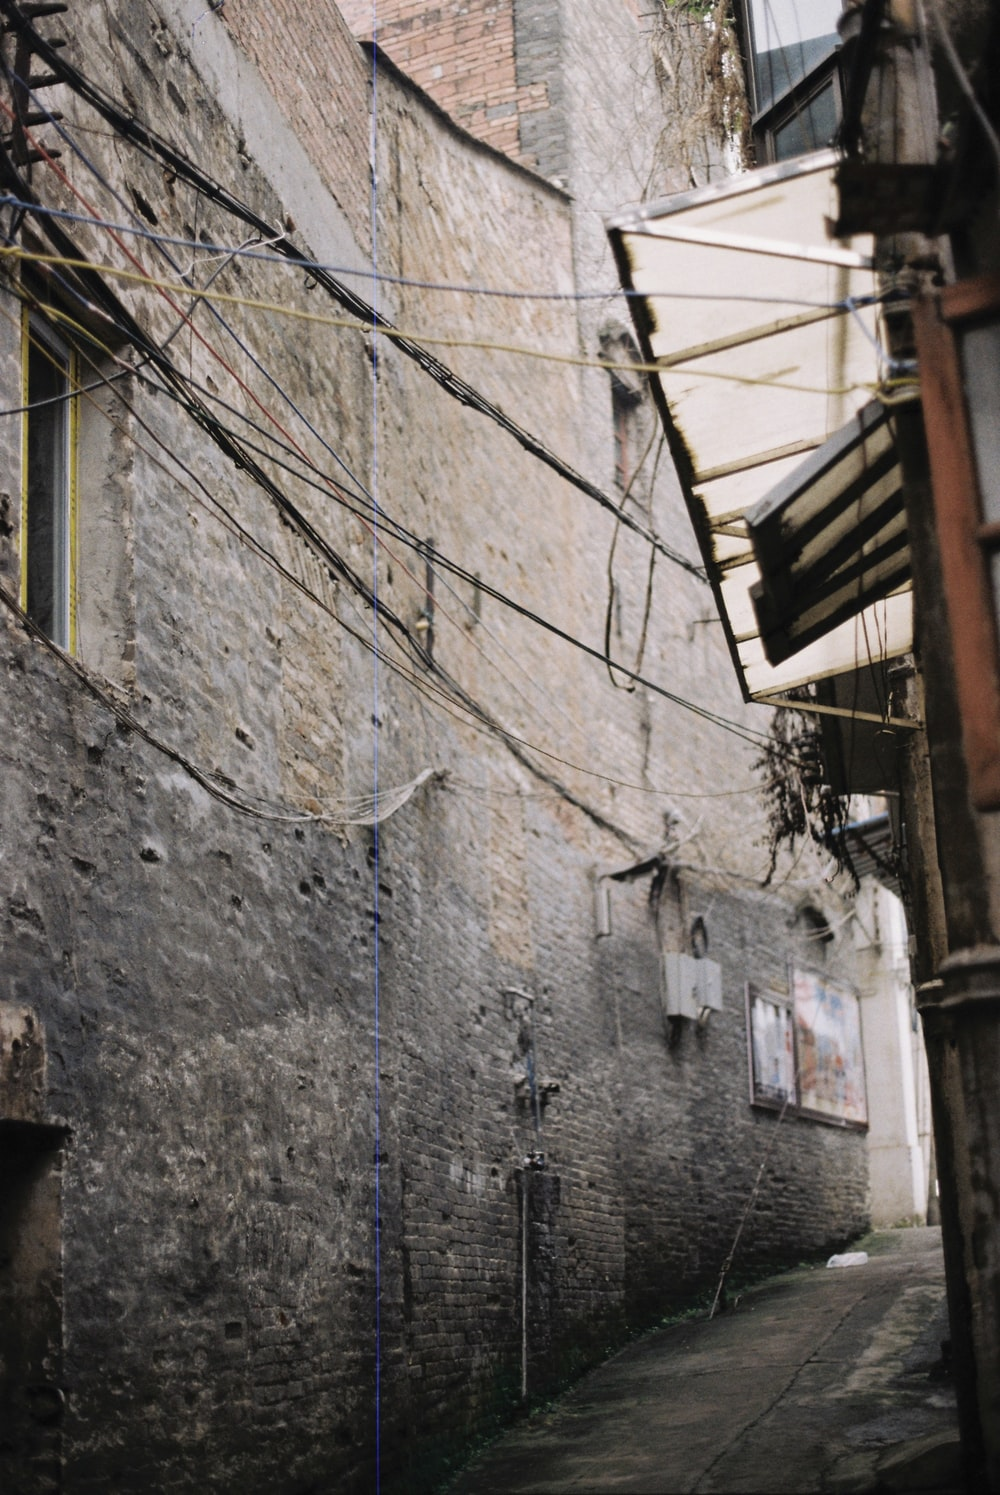 brown and grey wires hanging at alley